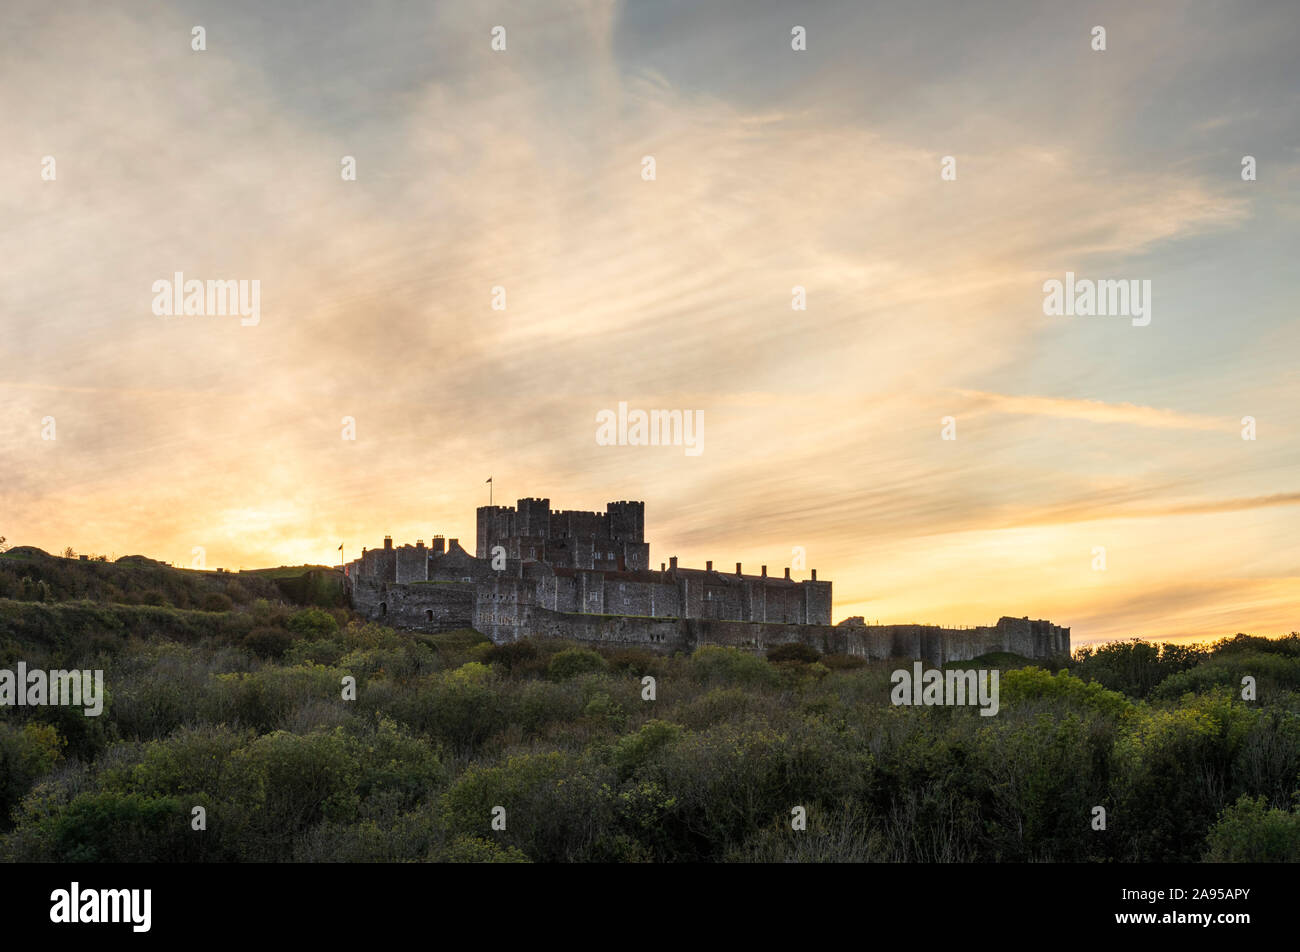 Dover Castle, Dover, Kent. The imposing medieval castle shot at sunset. Stock Photo